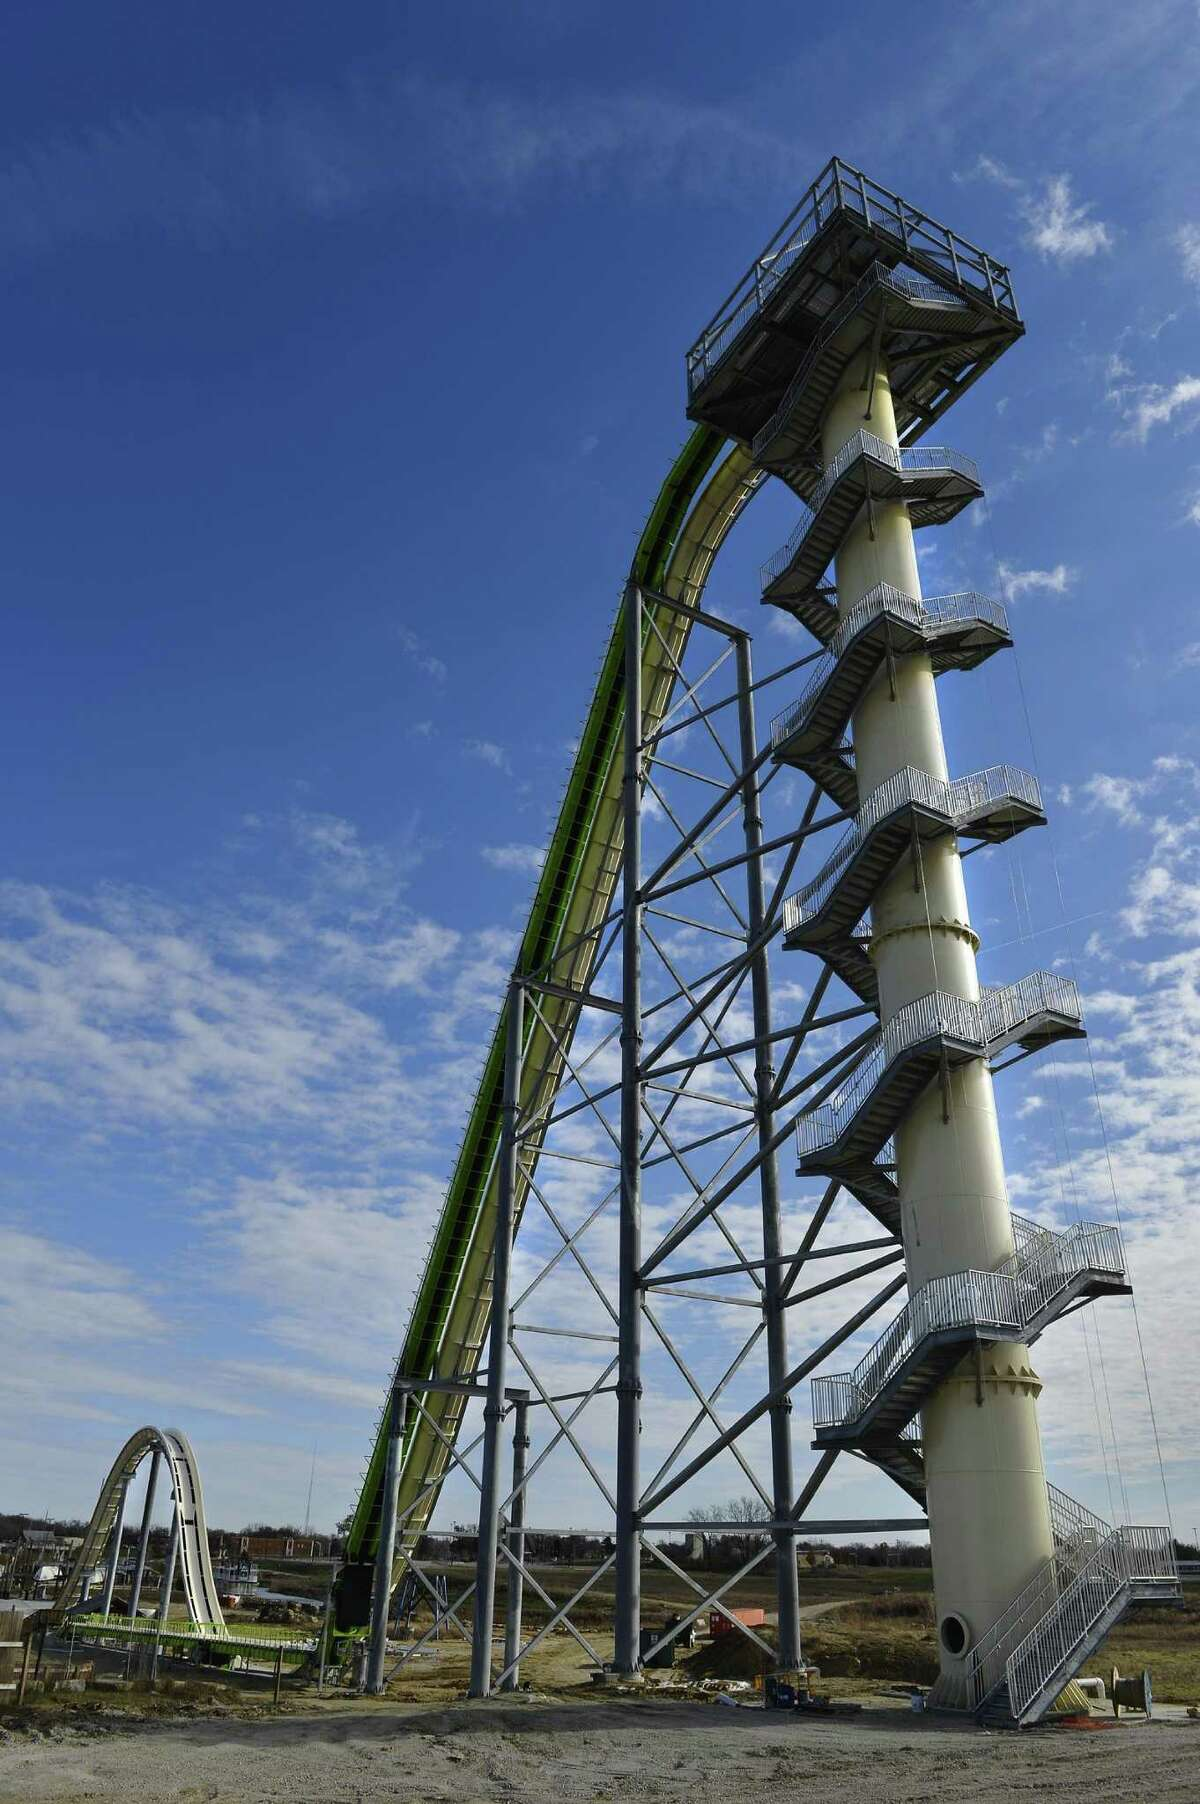 FILE - This Nov. 2013 file photo shows Schlitterbahn's new Verruckt speed slide/water coaster in Kansas City, Kan. A 12-year-old boy died Sunday, Aug. 7, 2016, on the Kansas water slide that is billed as the world's largest, according to officials. Kansas City, Kan., police spokesman Officer Cameron Morgan said the boy died at the Schlitterbahn Waterpark, which is located about 15 miles west of downtown Kansas City, Missouri. Schlitterbahn spokeswoman Winter Prosapio said the child died on one of the park's main attractions, Verruckt, a 168-foot-tall water slide that has 264 stairs leading to the top. (Jill Toyoshiba/The Kansas City Star via AP, File) ORG XMIT: MOKAS200